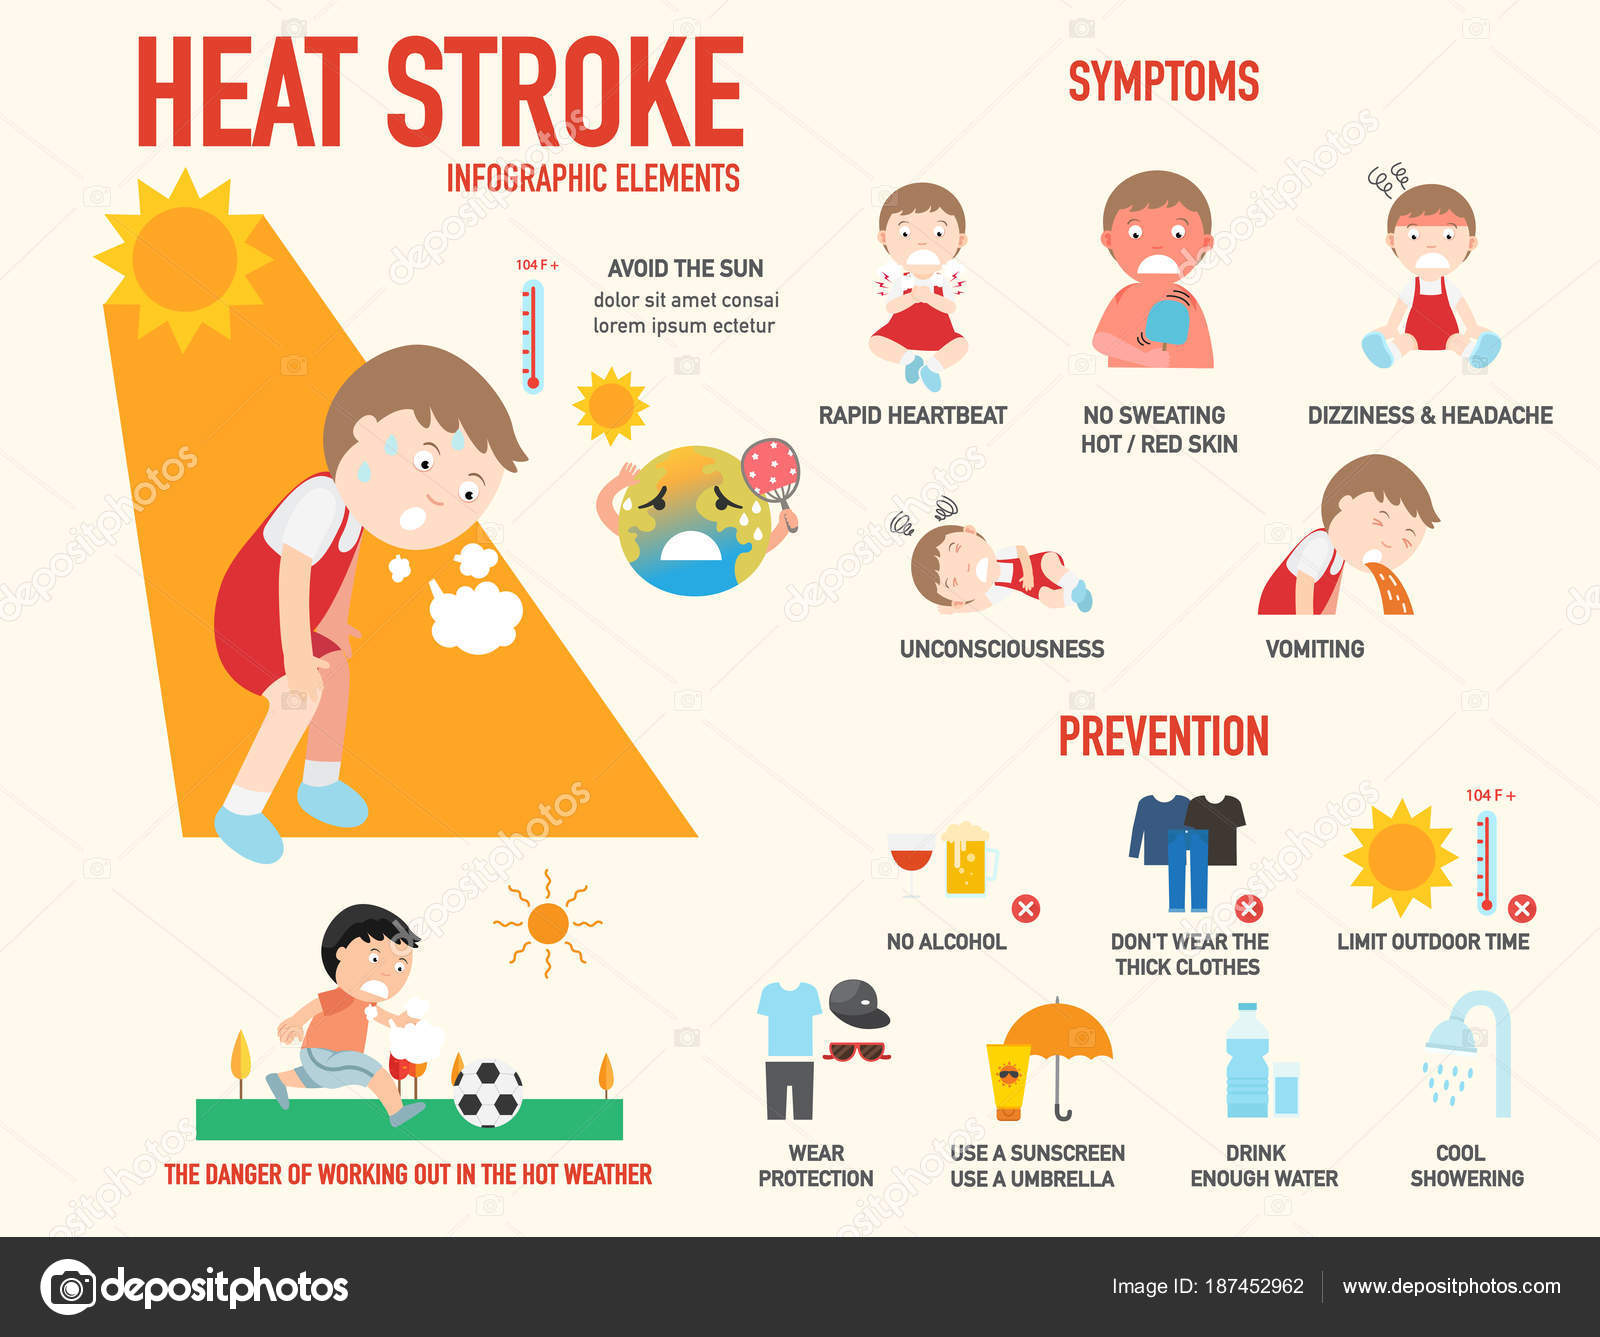 heat stroke risk sign and symptom and prevention infographic il stock vector jehsomwang. Black Bedroom Furniture Sets. Home Design Ideas